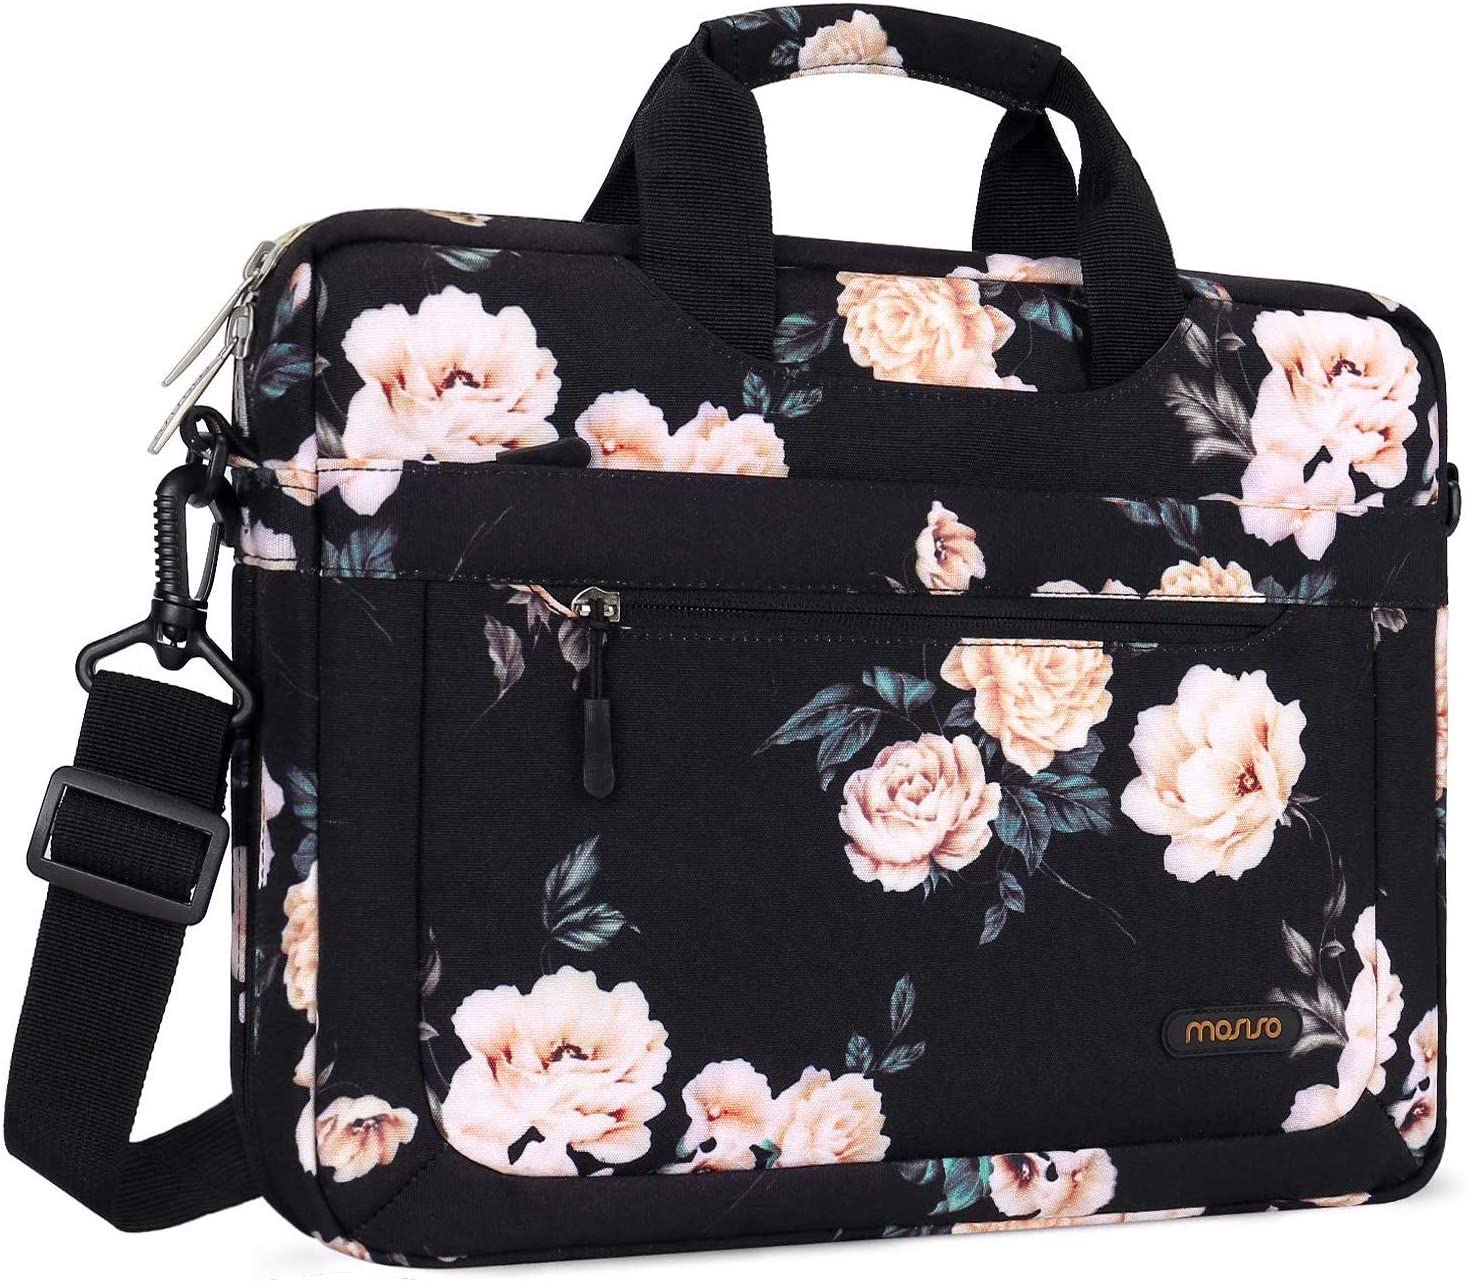 MOSISO Laptop Shoulder Bag Compatible with 13-13.3 inch MacBook Pro, MacBook Air, Notebook, Polyester Camellia Messenger Carrying Briefcase Sleeve with Adjustable Depth at Bottom, Black